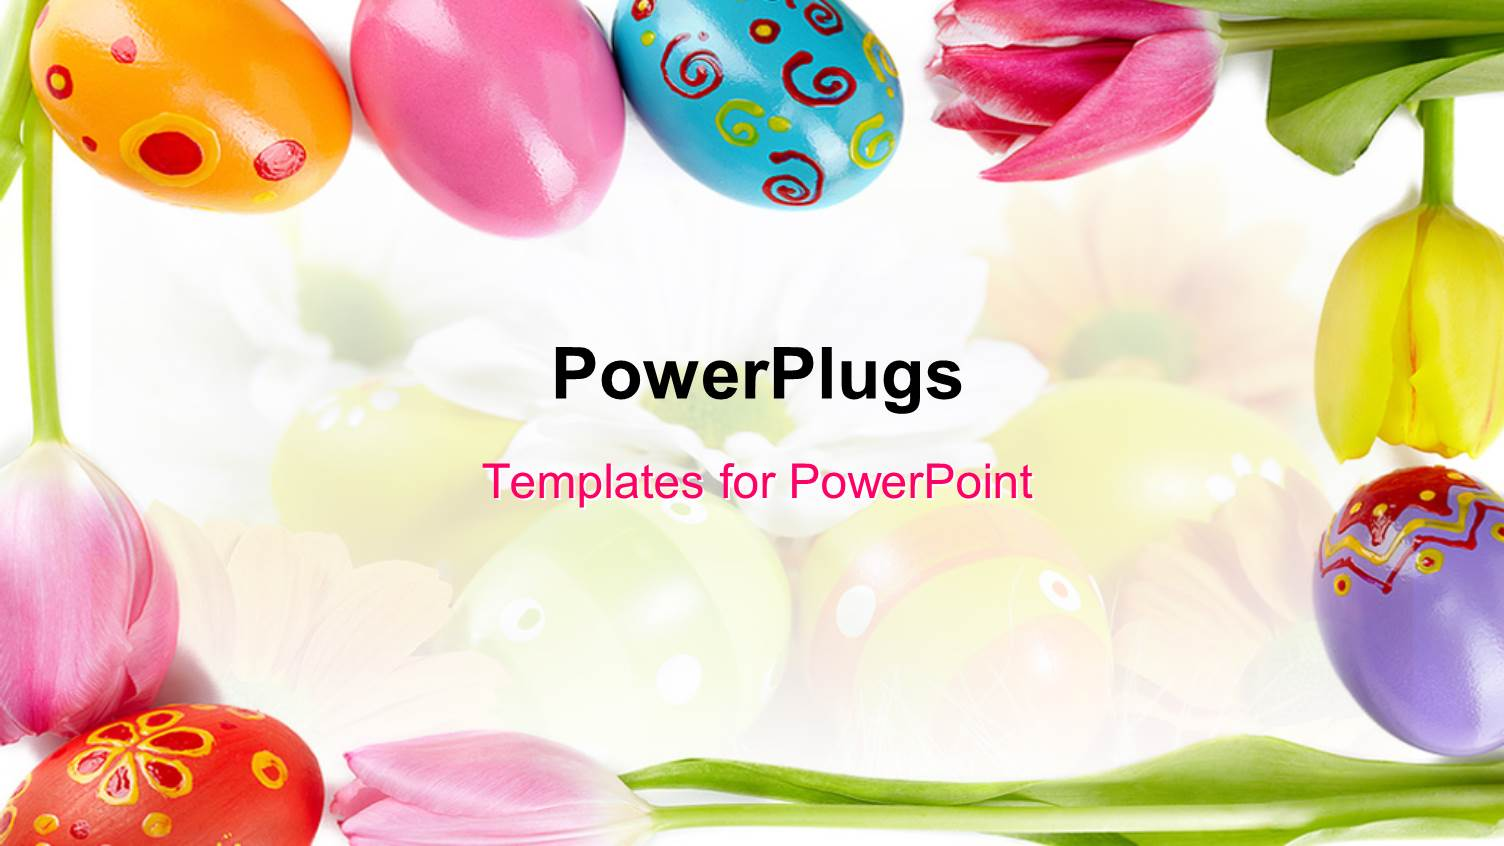 Powerpoint template a number of easter eggs with colorful powerpoint template displaying a number of easter eggs with colorful background toneelgroepblik Image collections